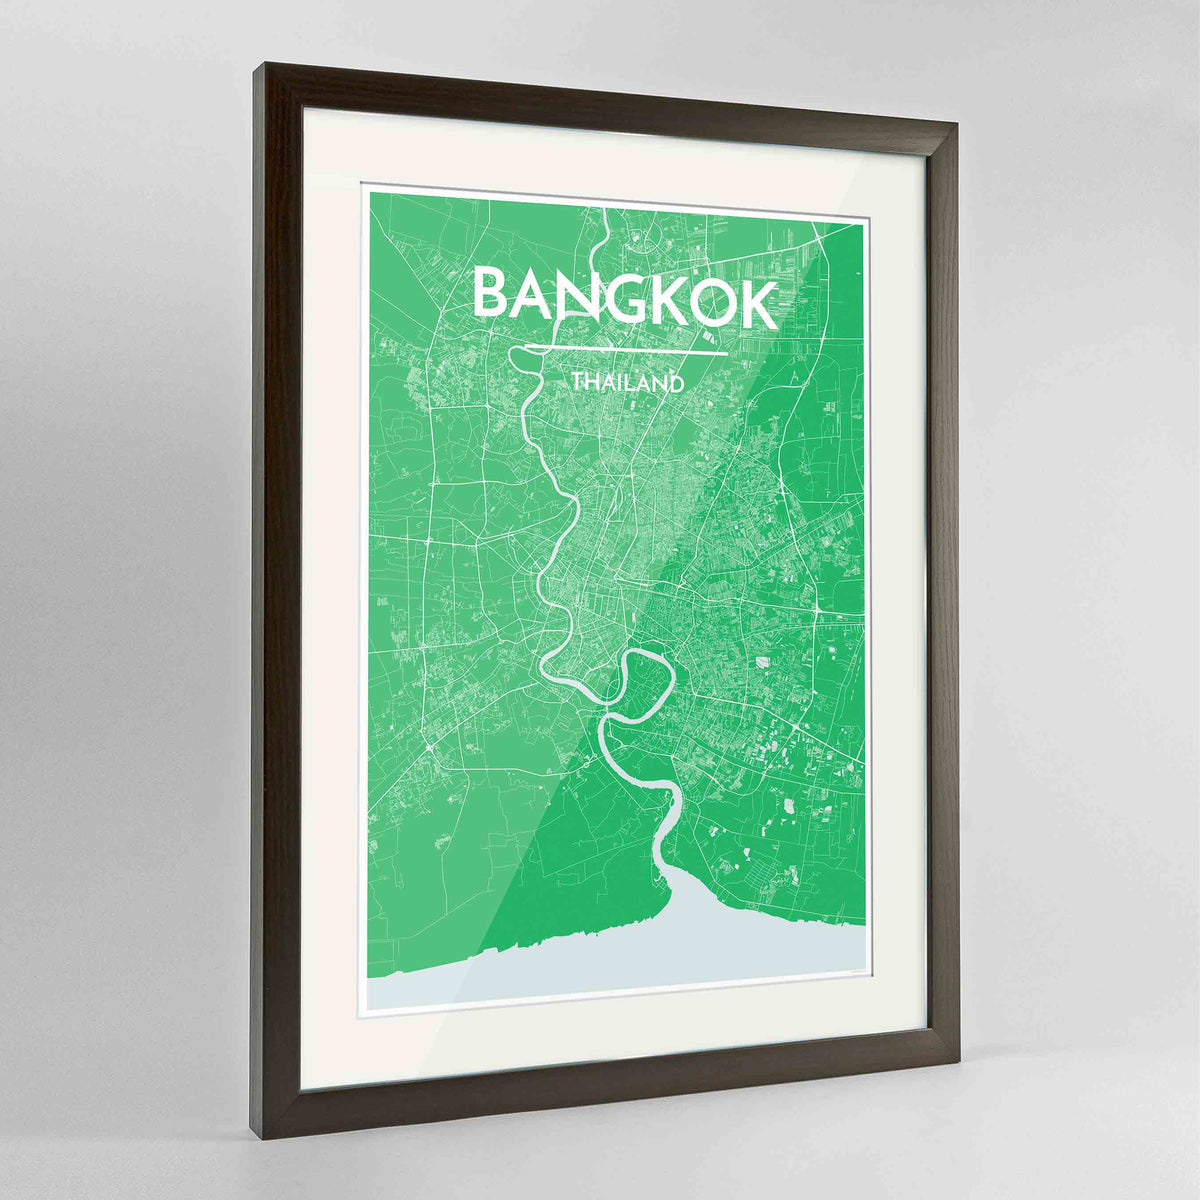 "Framed Bangkok Map Art Print 24x36"" Contemporary Walnut frame Point Two Design Group"